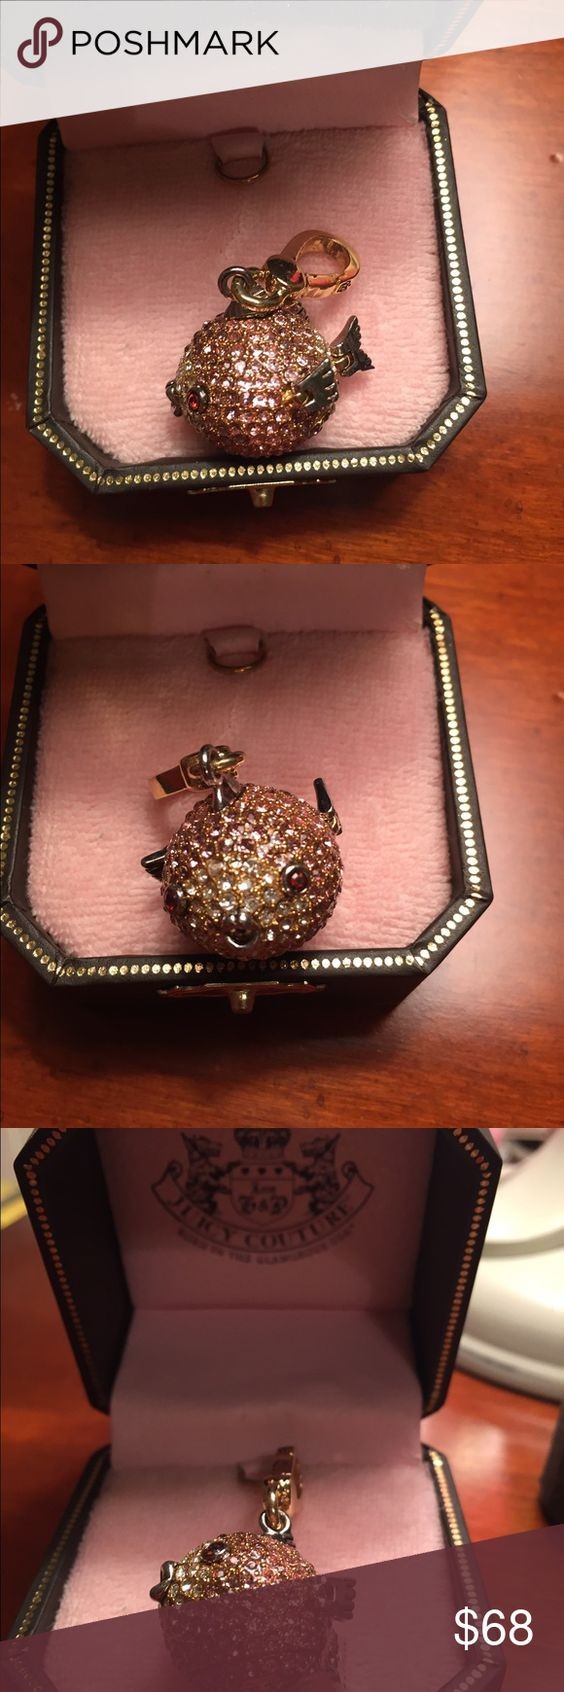 Juicy Couture Puffer Fish Diamond Charm Never Used On The Bracelet Super  Pretty Design Juicy